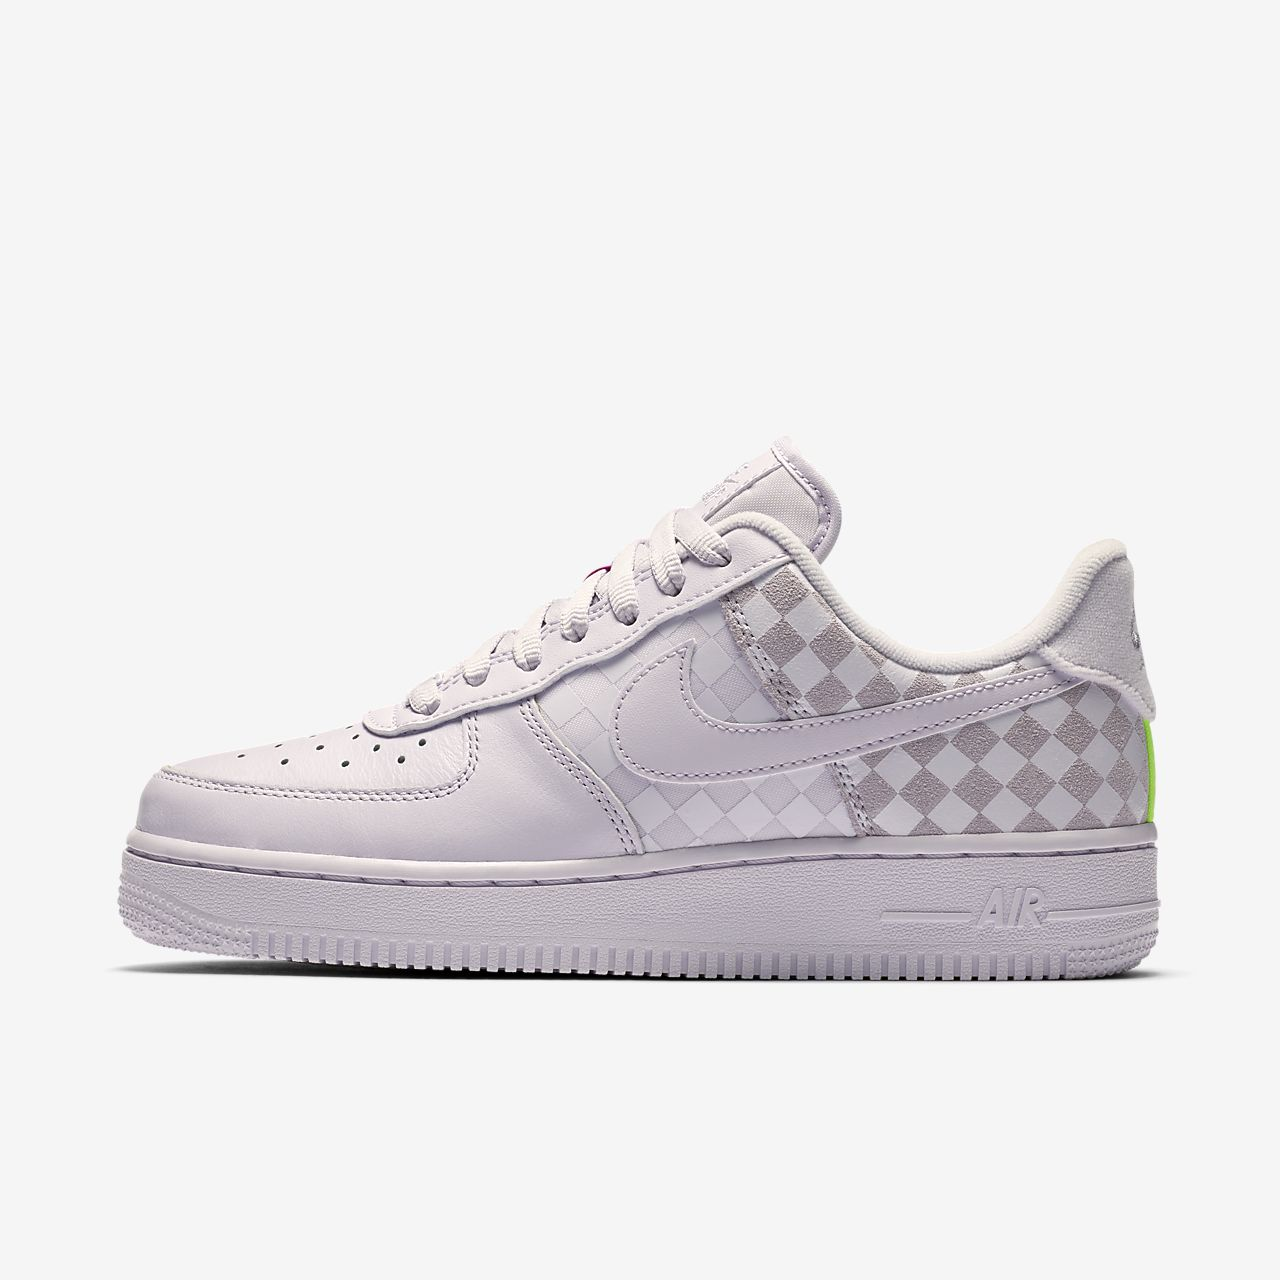 Force Chaussure Air 1 Low FemmeFr Pour Nike 6fvybY7g